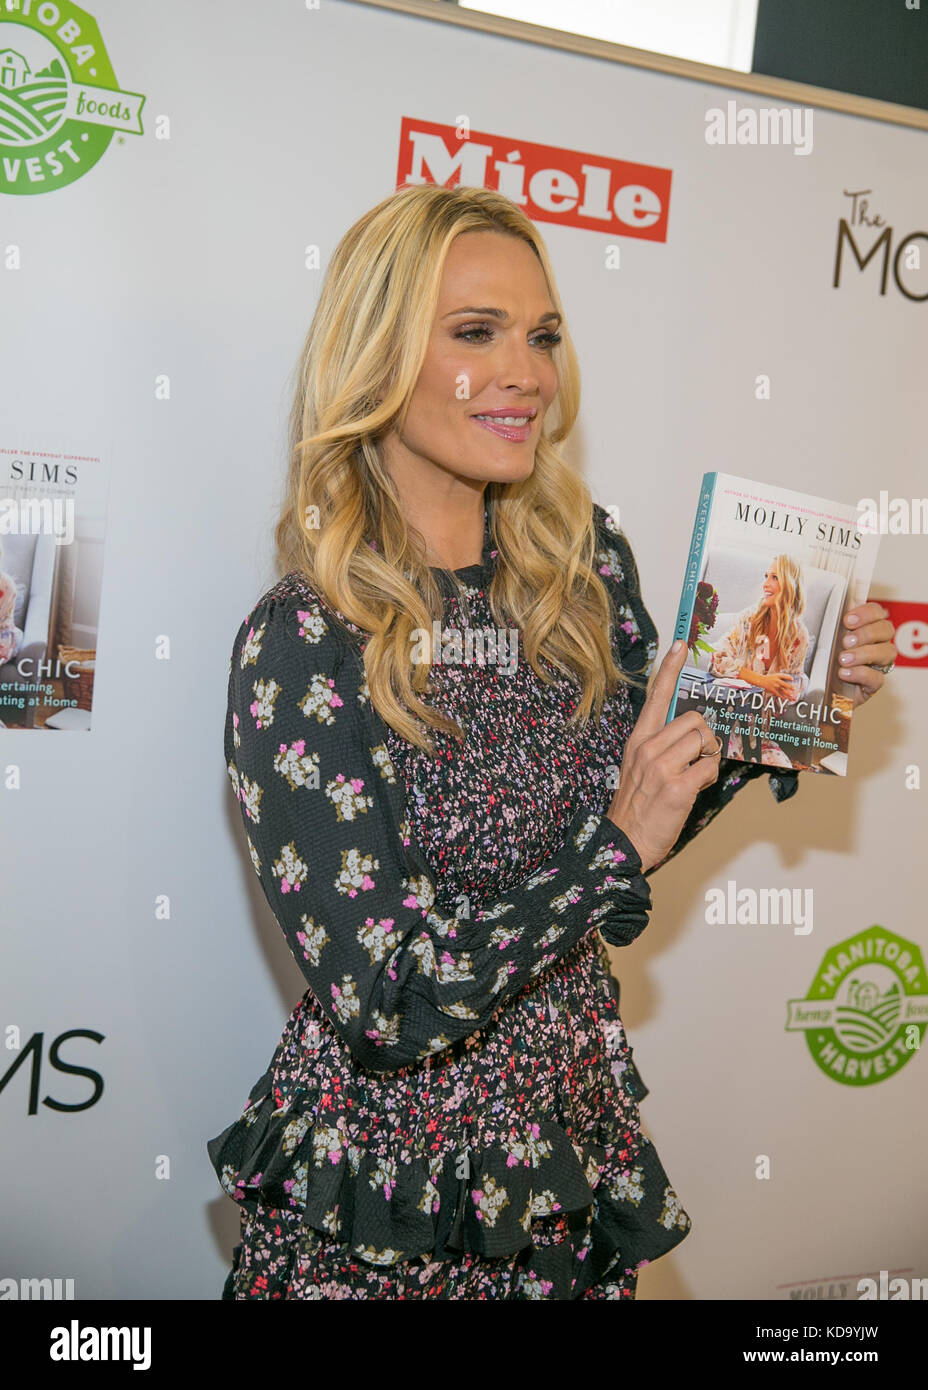 Molly Sims USA 	1 	2001 Molly Sims USA 	1 	2001 new picture